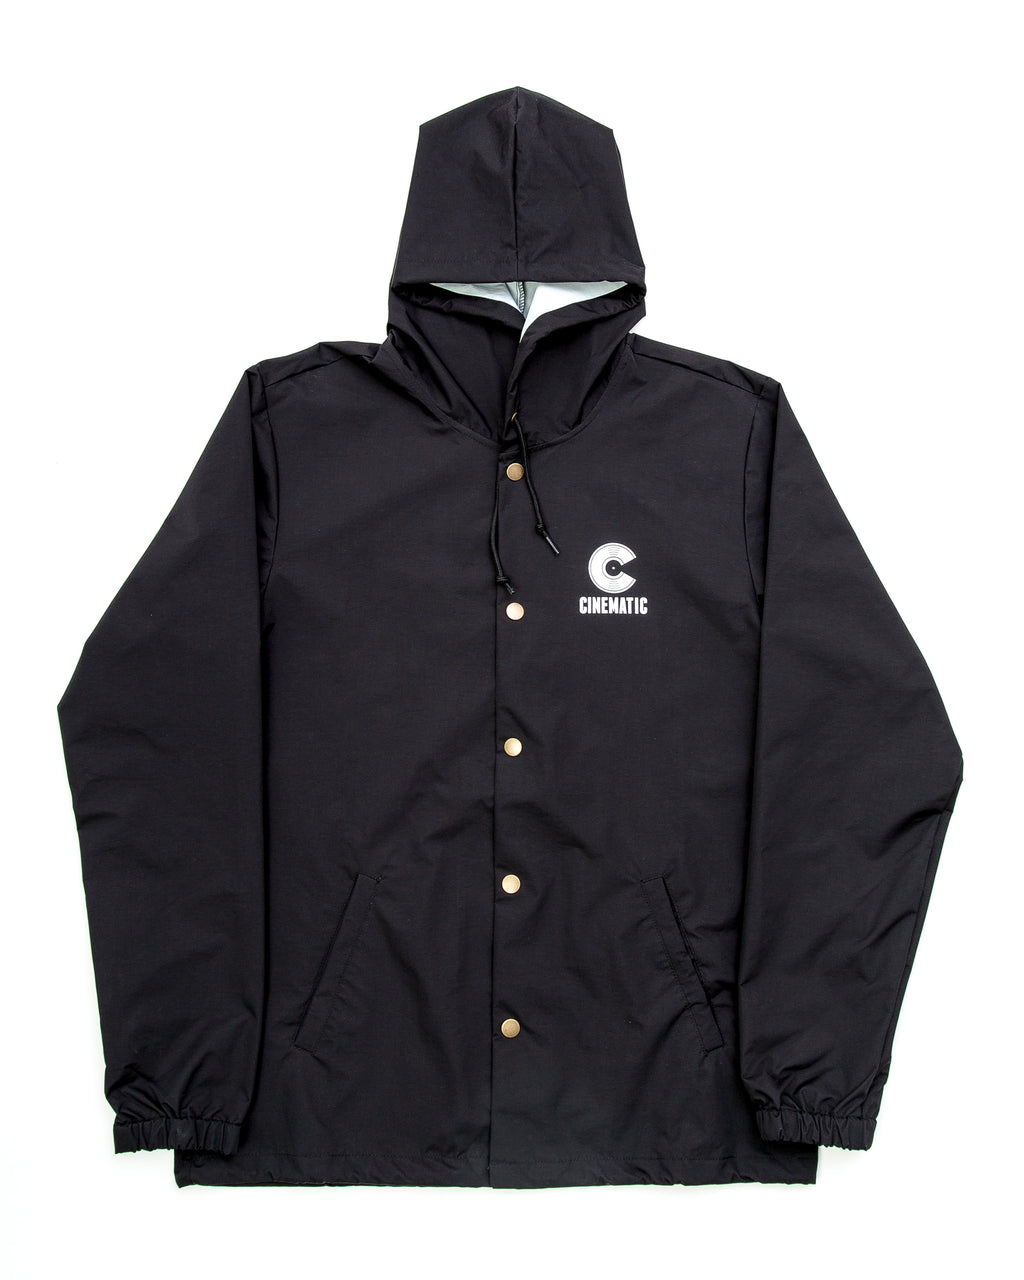 Cinematic Hooded Coach Jacket (Black)